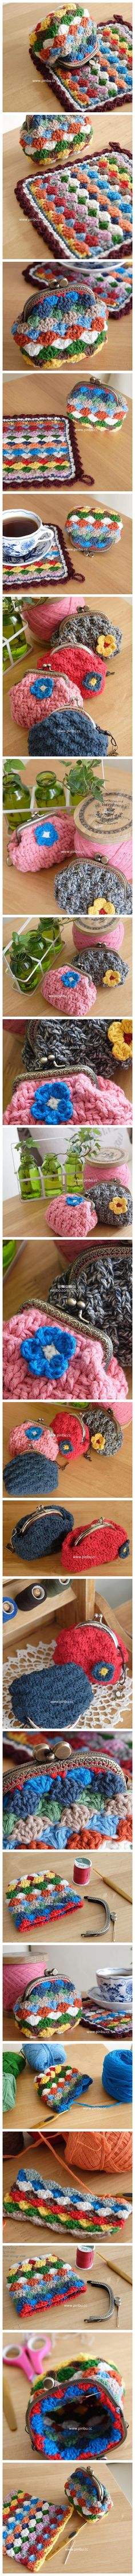 Love these little purses! The stitch is so versatile